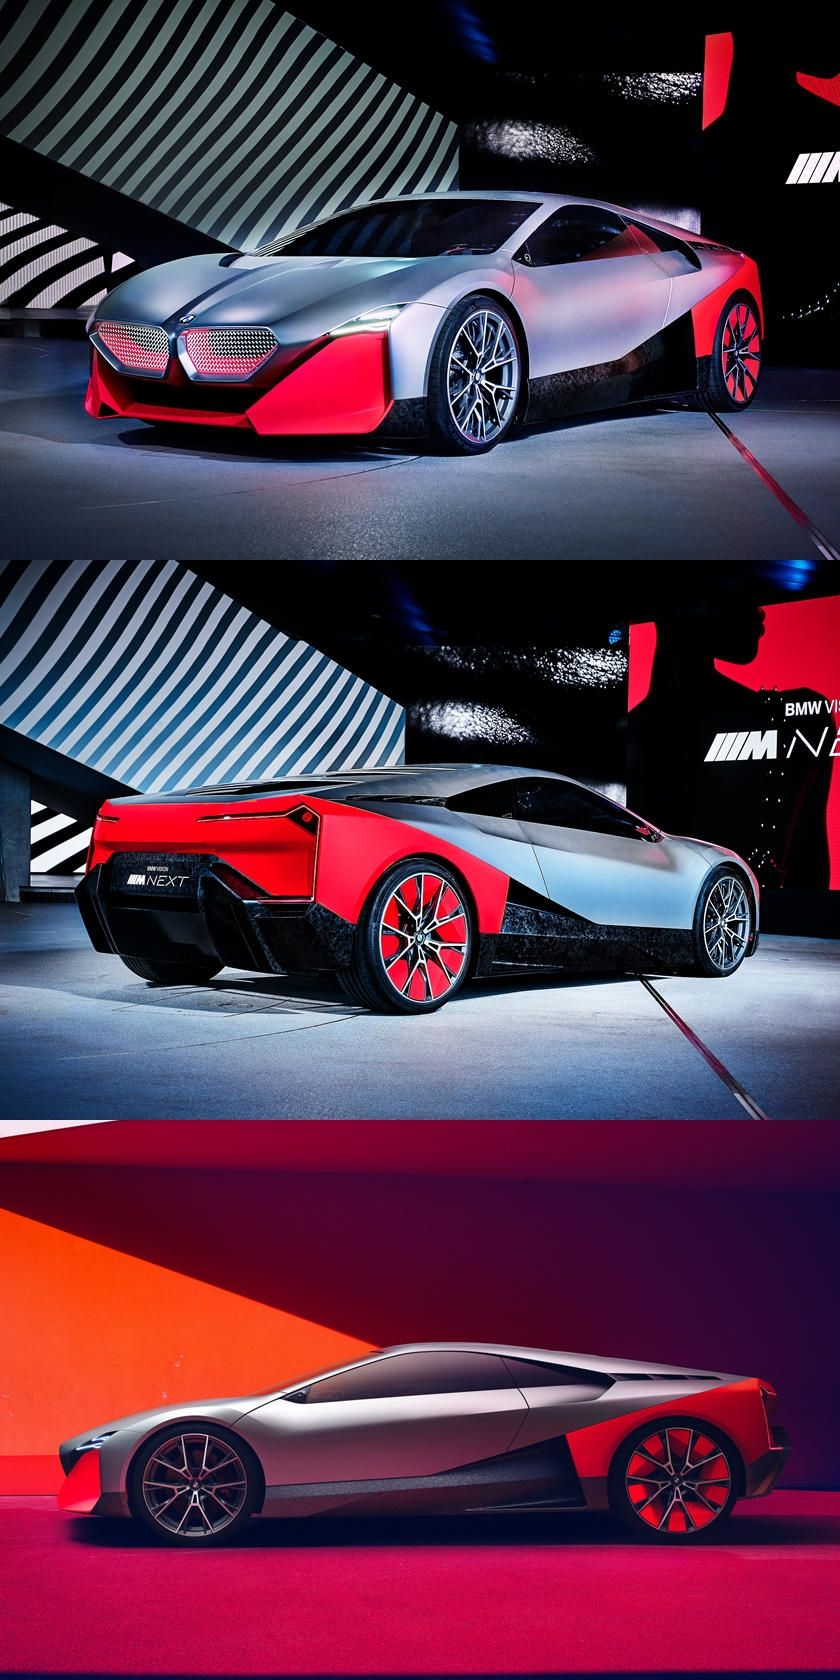 There Are New Details About Bmw S Next Supercar How Much Will It Cost When Will It Debut Read On In 2020 Super Cars Hybrid Sports Car Bmw